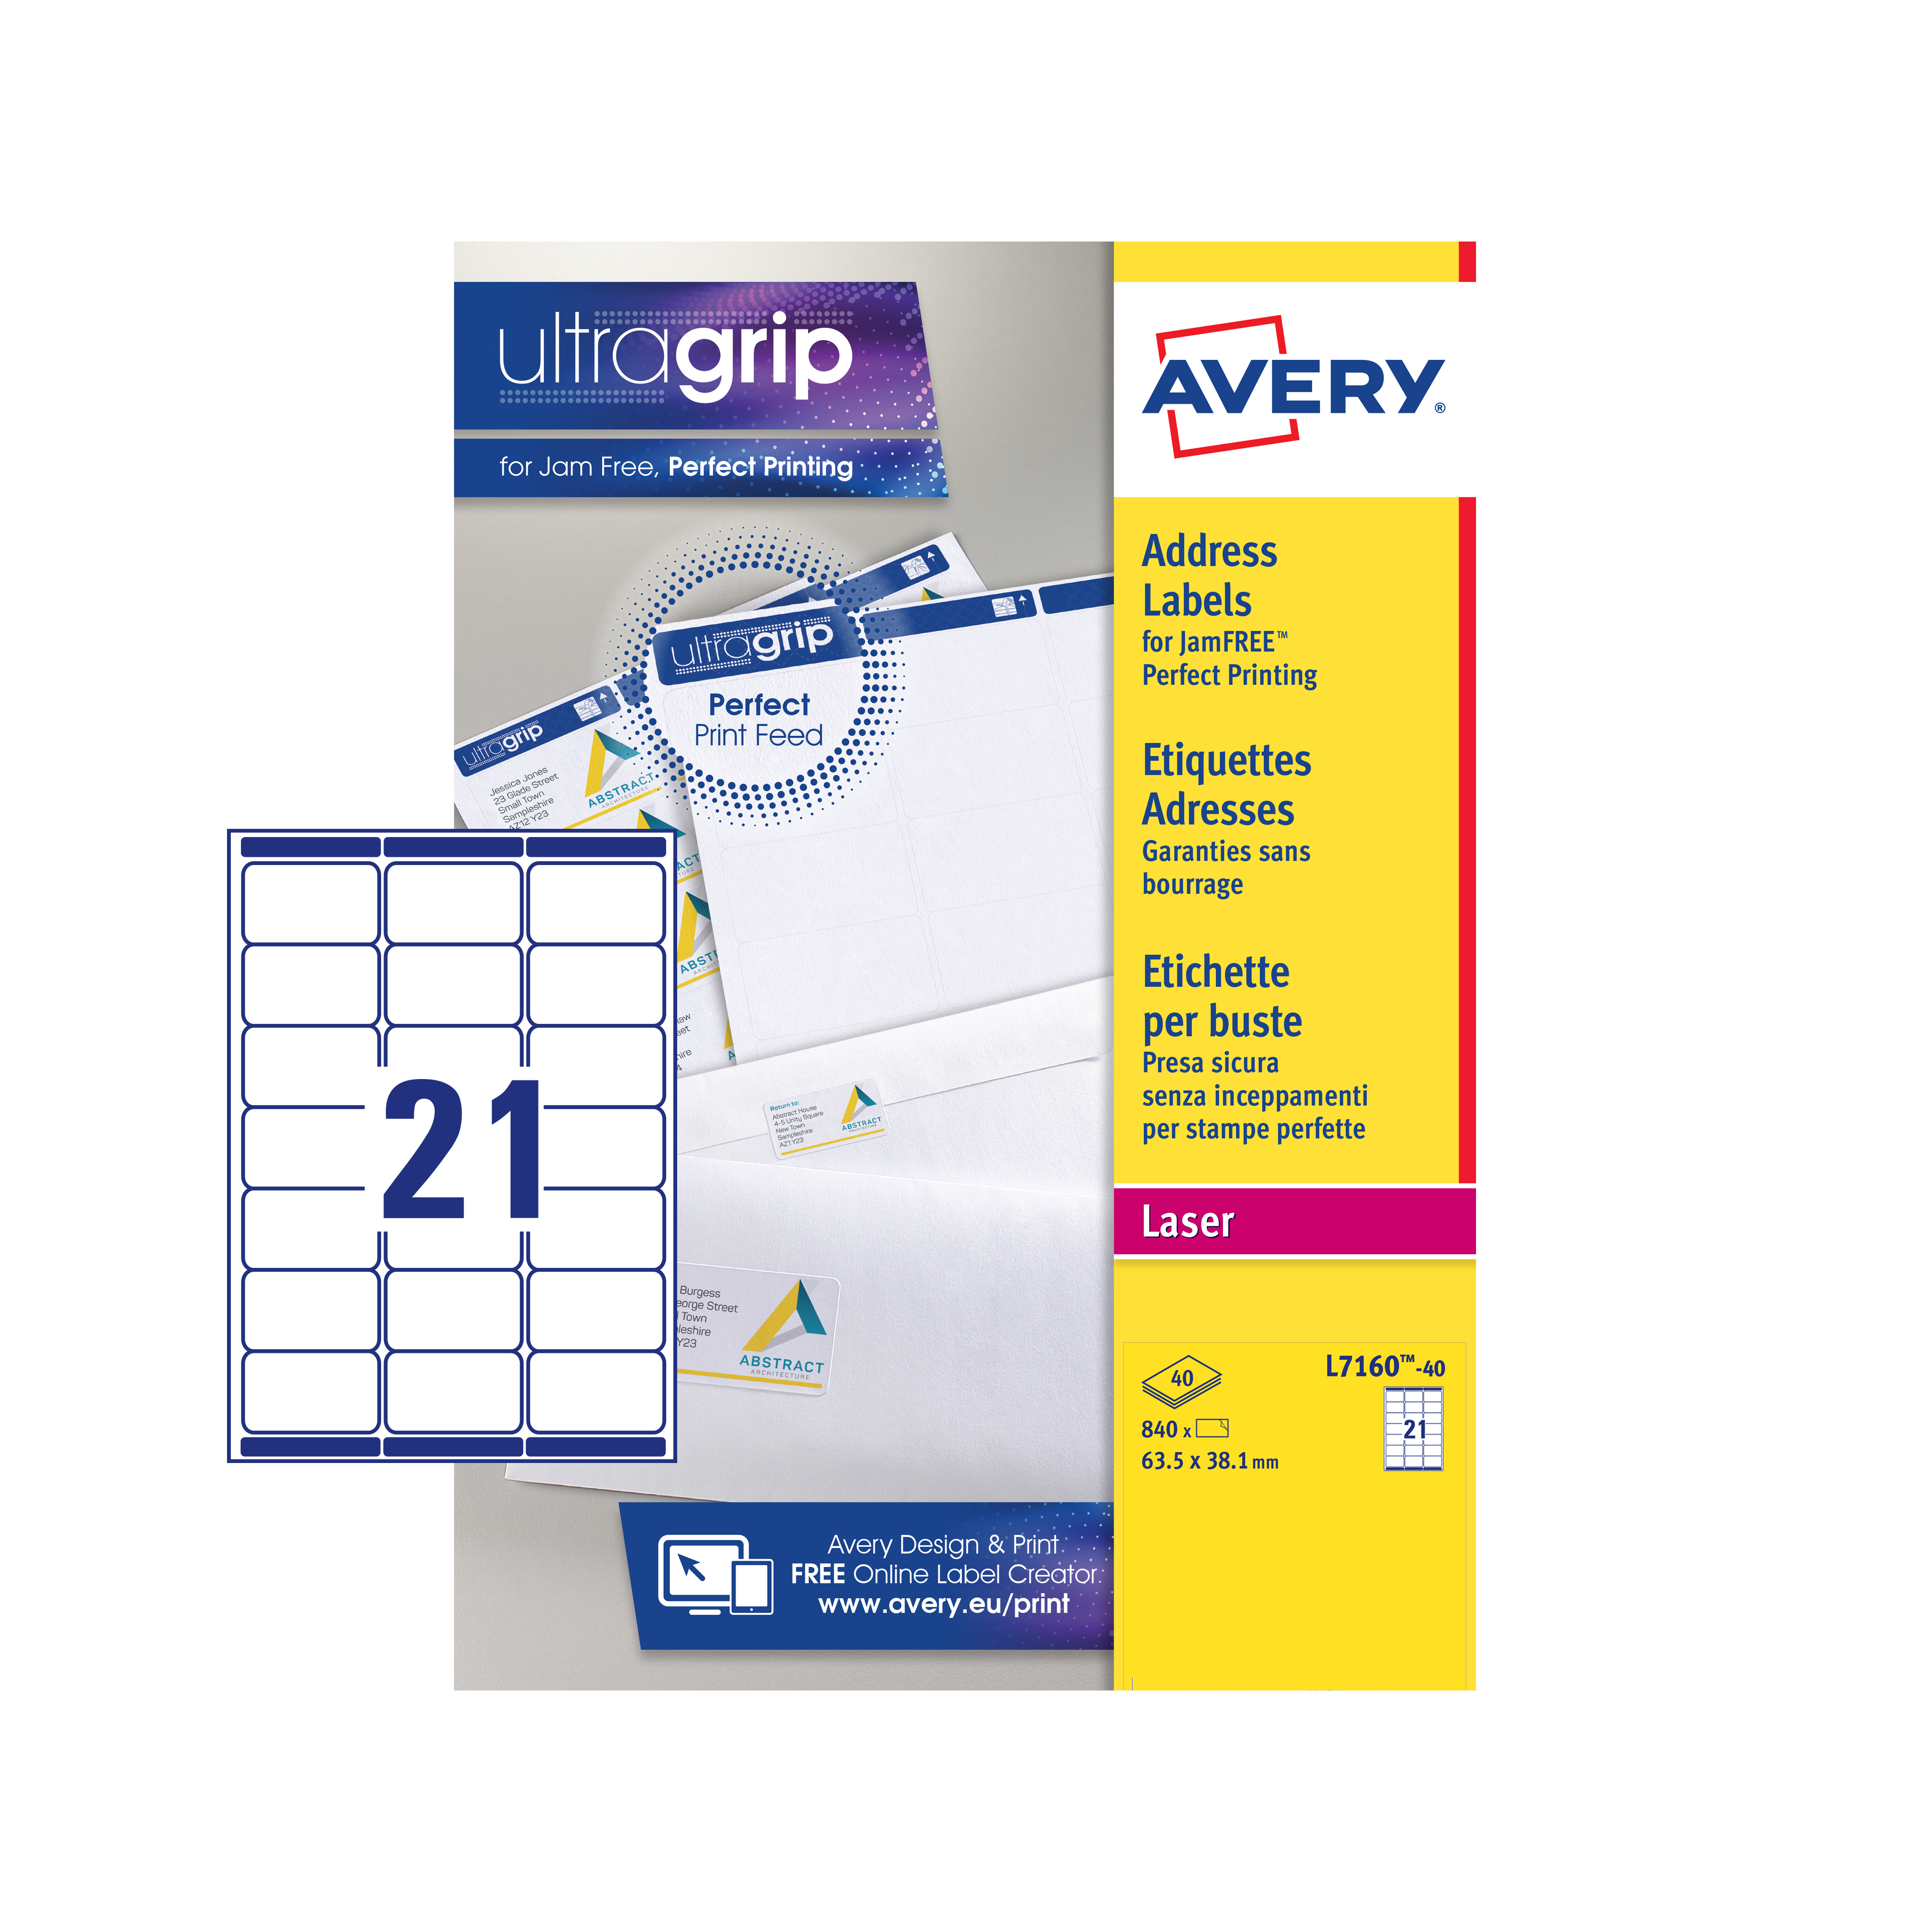 Avery Addressing Labels Laser Jam-free 21 per Sheet 63.5x38.1mm White Ref L7160-40 840 Labels